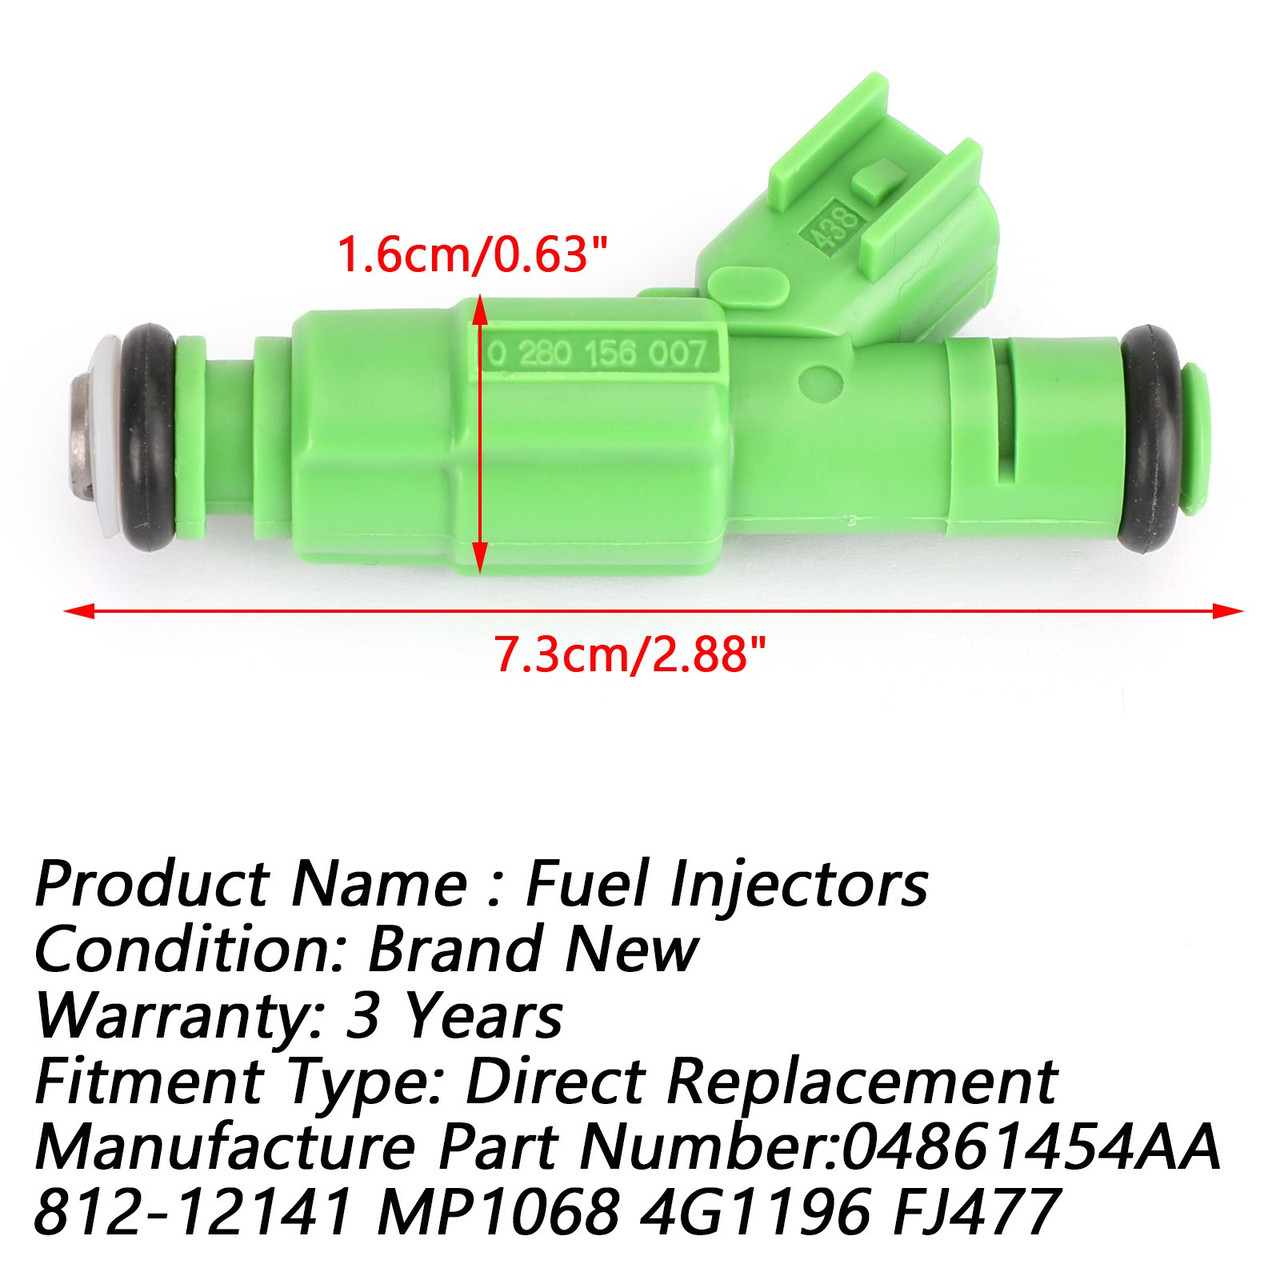 6pcs New Flow Matched Fuel Injectors FJ477 MP1068 Fit For Chrysler Town & Country 01-07 Voyager 01-03